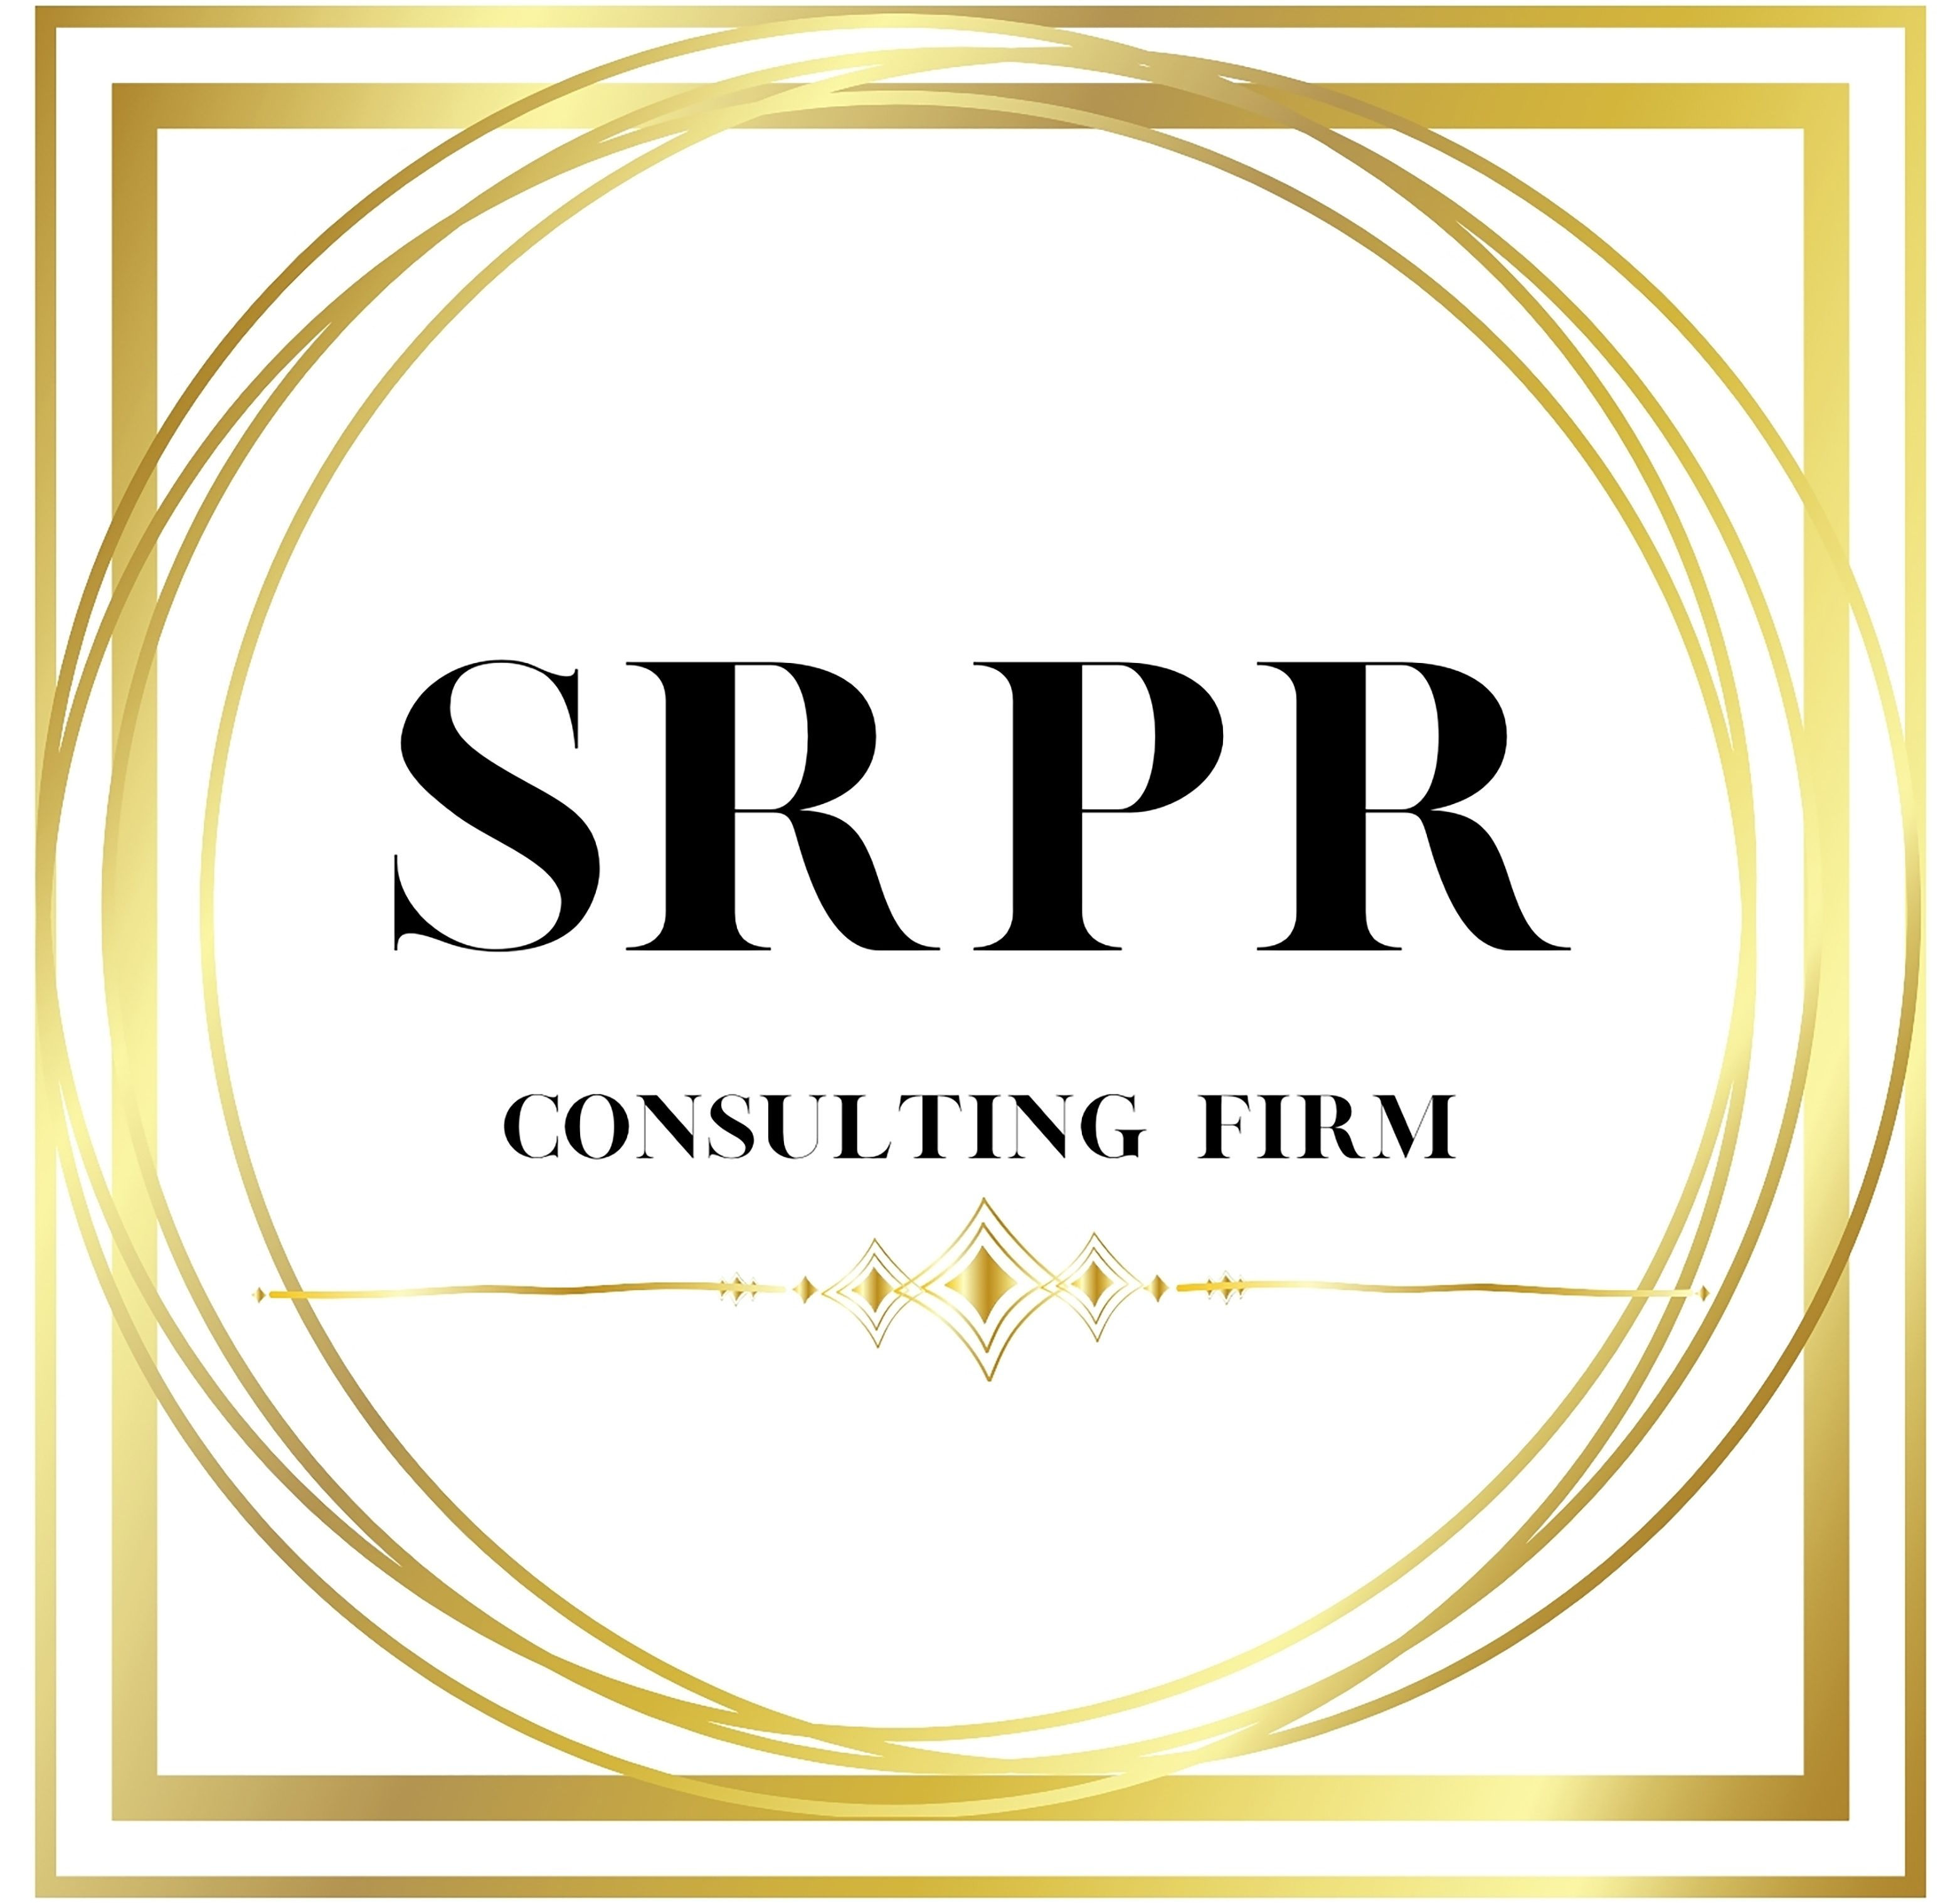 SRPR Consulting Firm